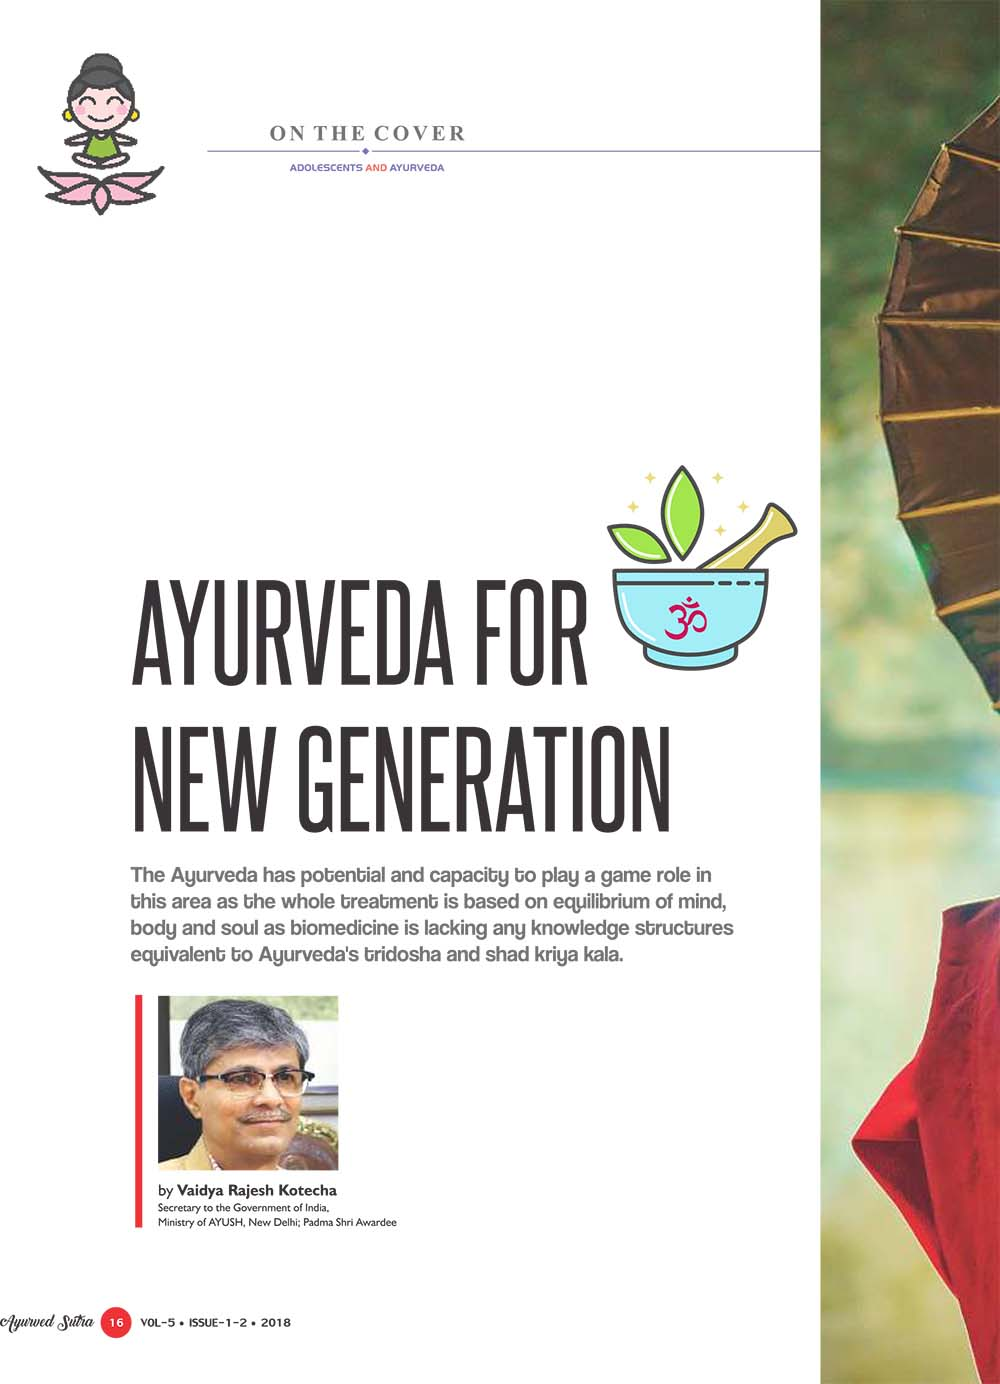 Ayurvedsutra Vol 05 issue 01 02 18 - Ayurveda for new generation